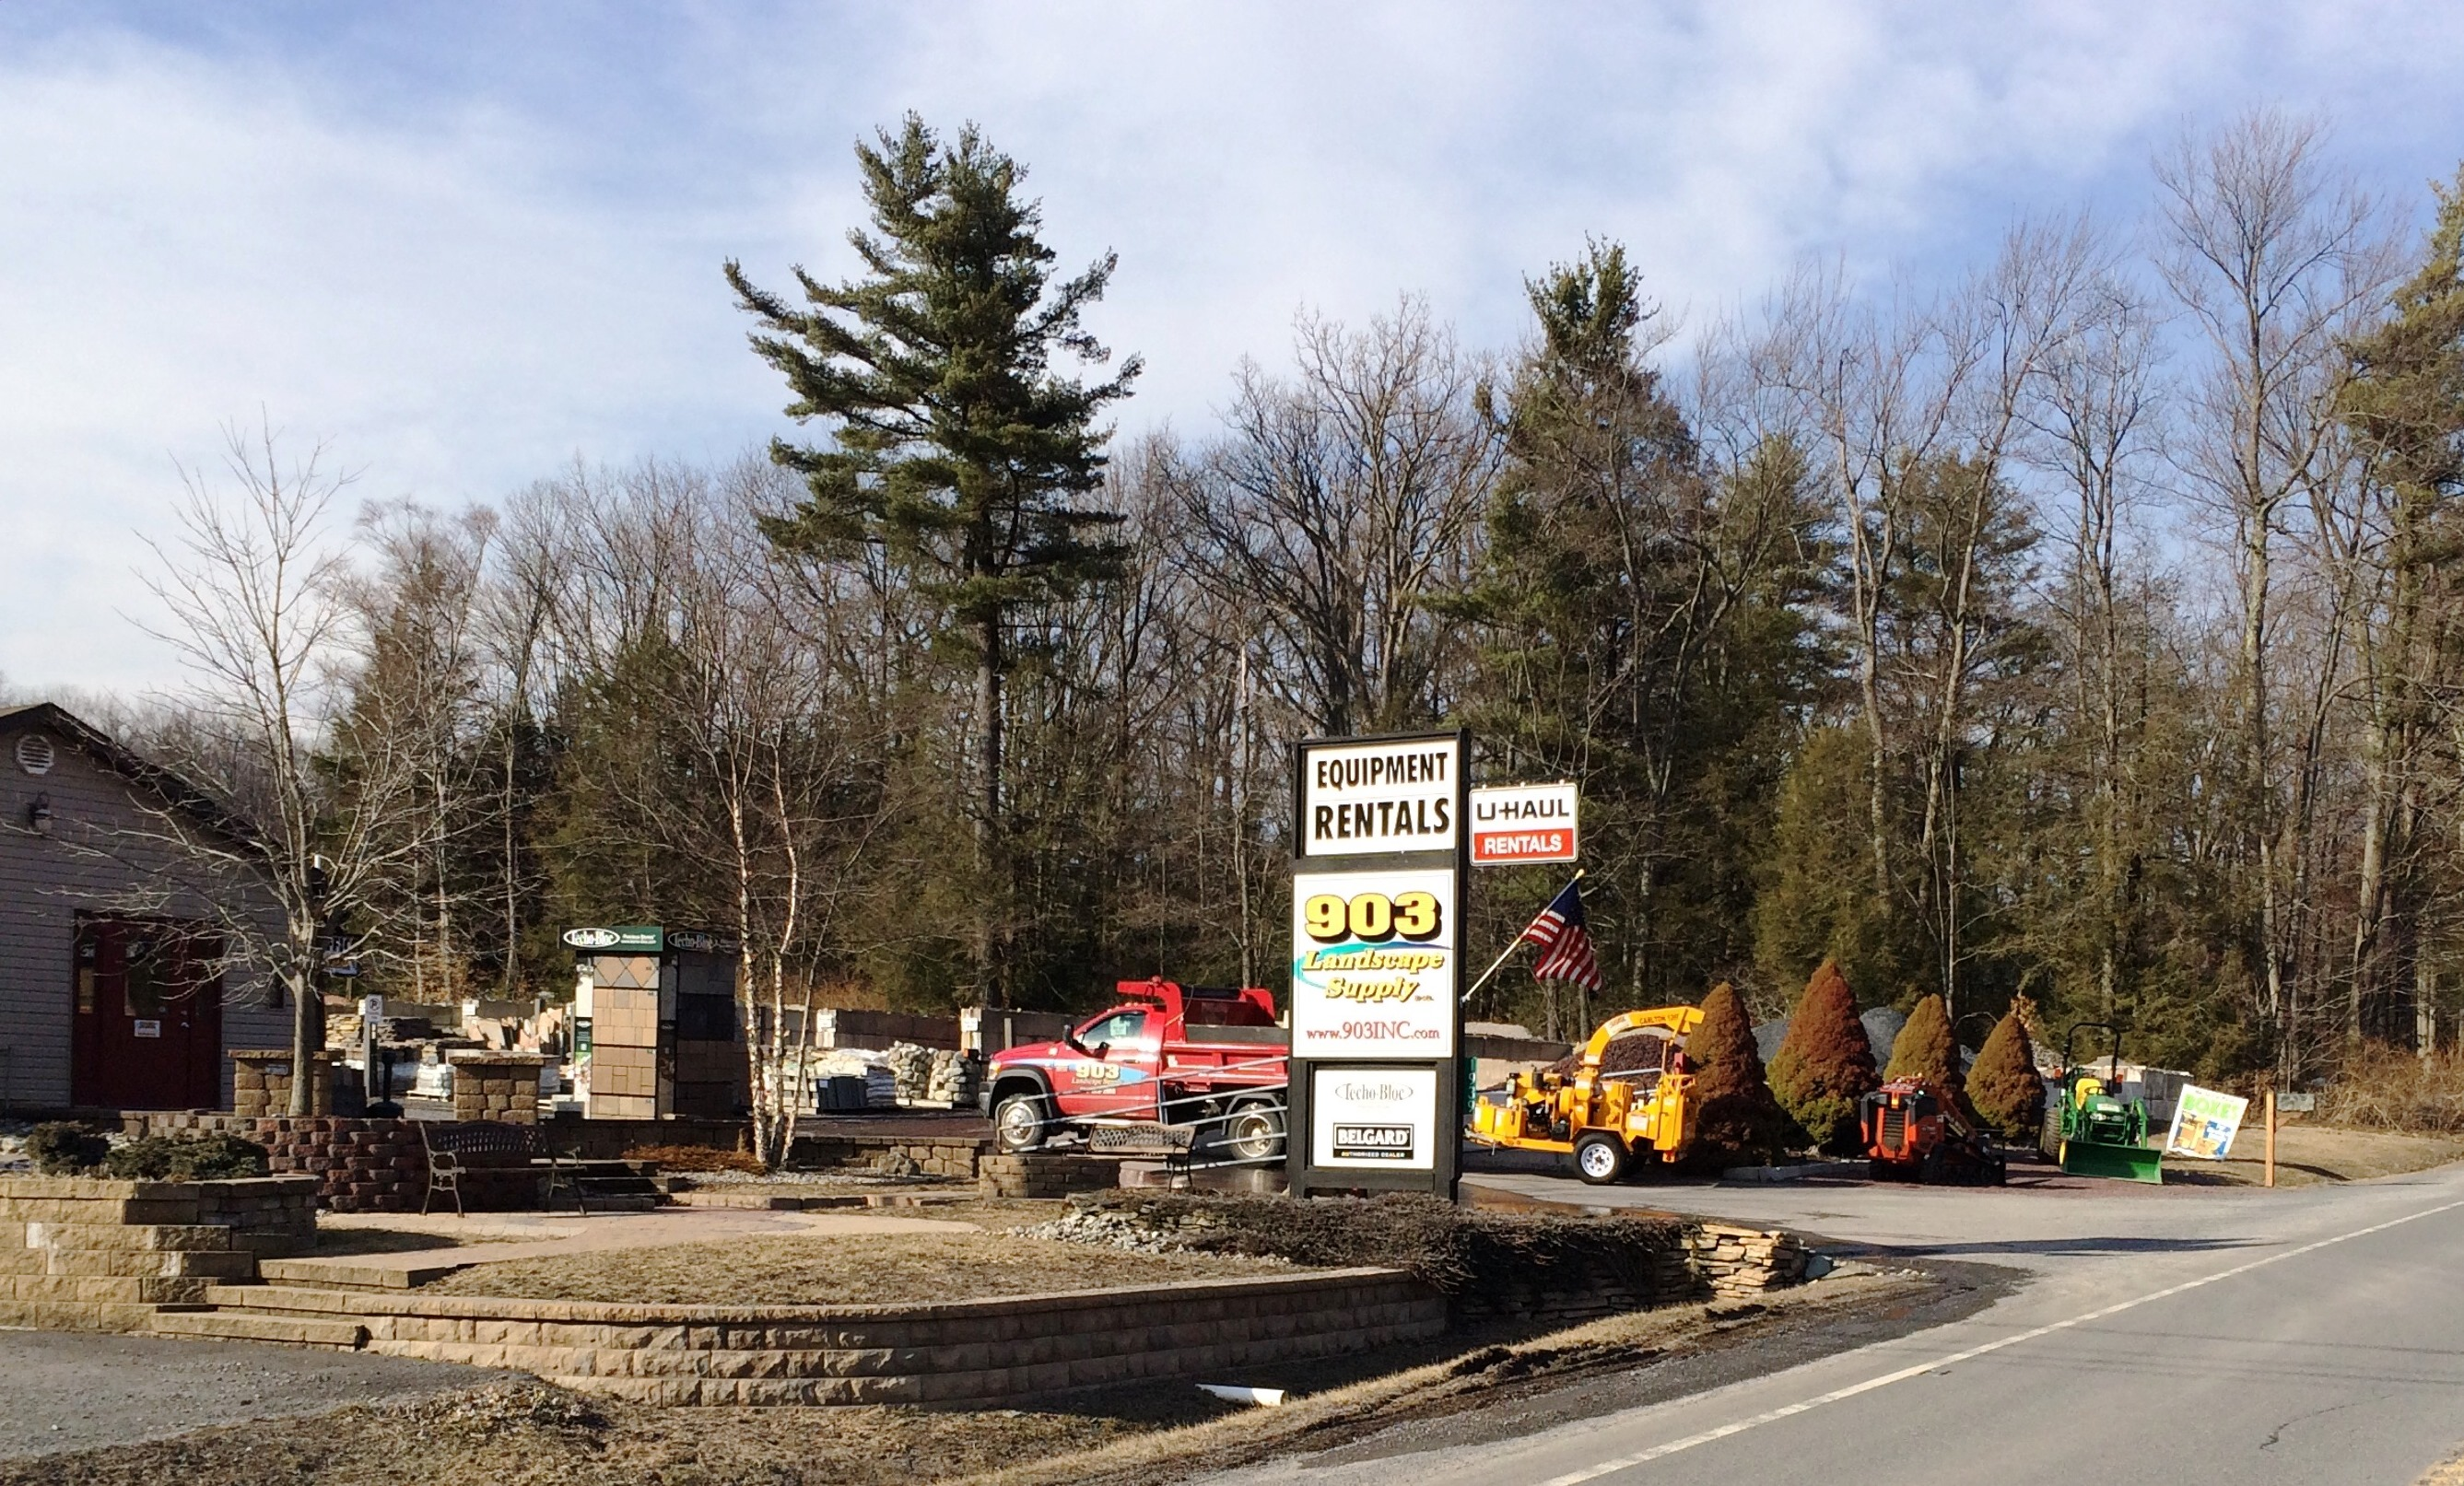 903 Landscape Supply Inc 1939 State Route 903, Jim Thorpe, PA 18229 ...